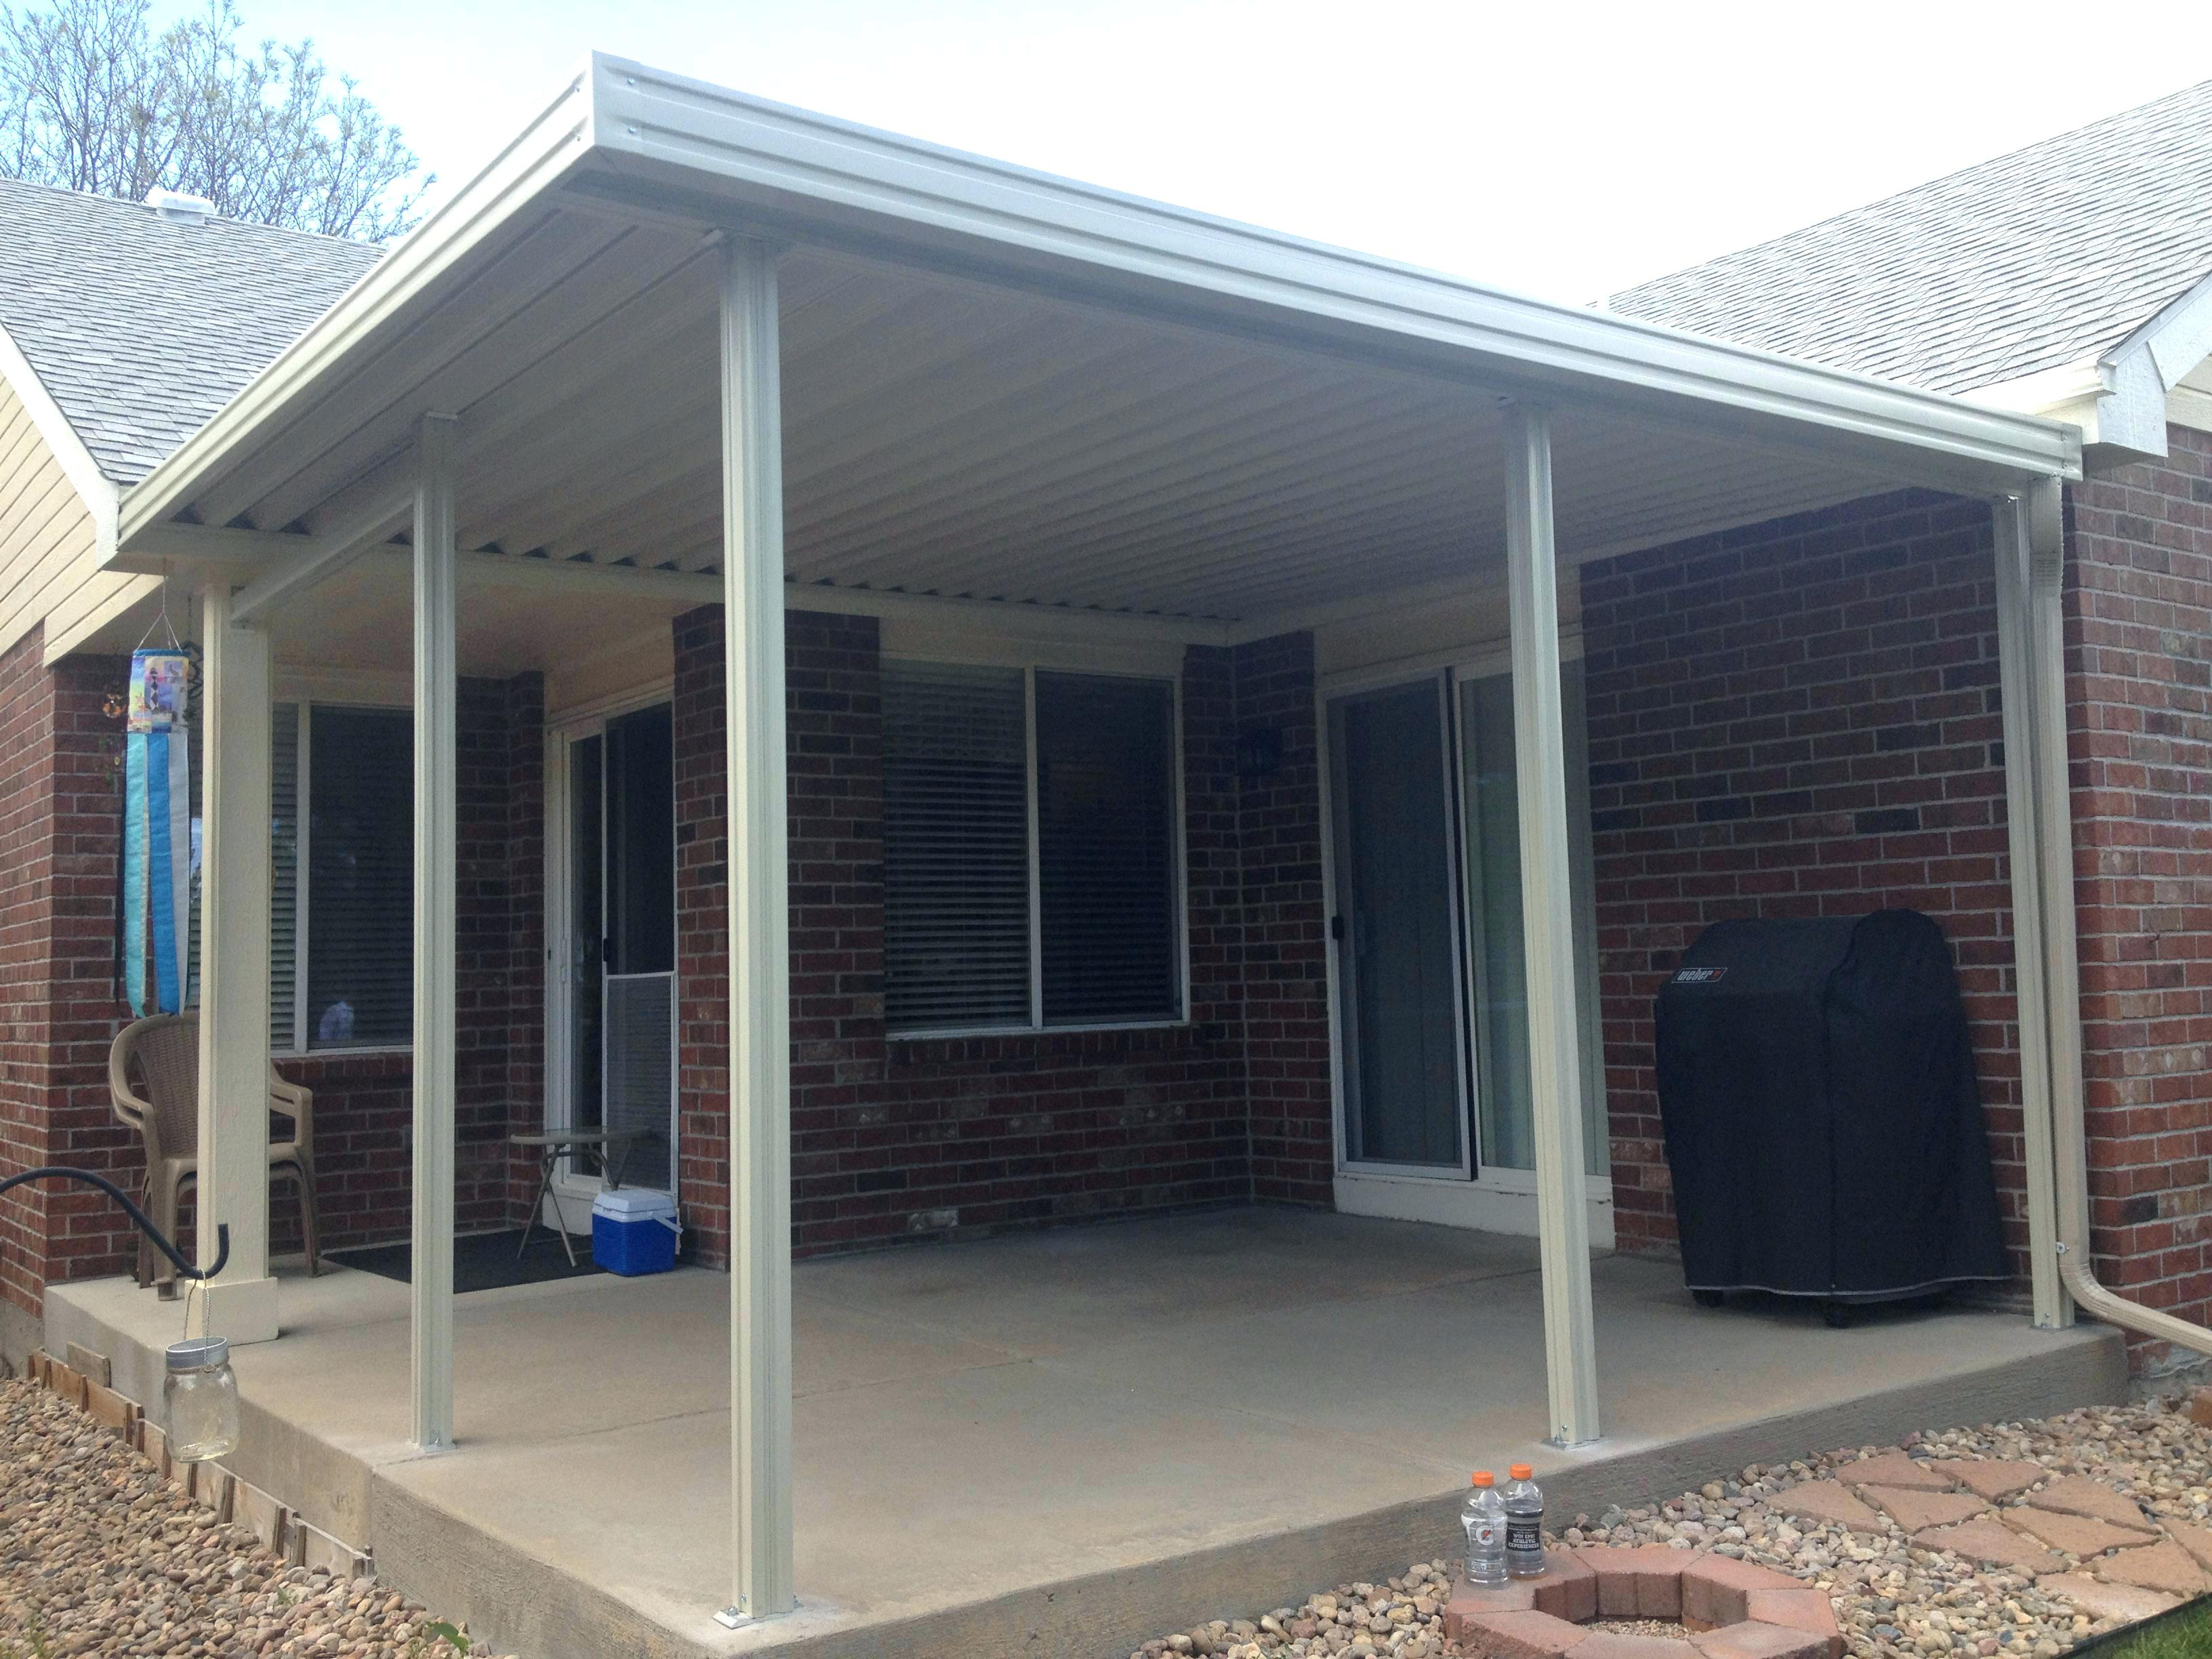 Useful Portable Carport With Additional Garage Awning Kit Portable Carport Awnings Steel Full Image For Of Portable Carport